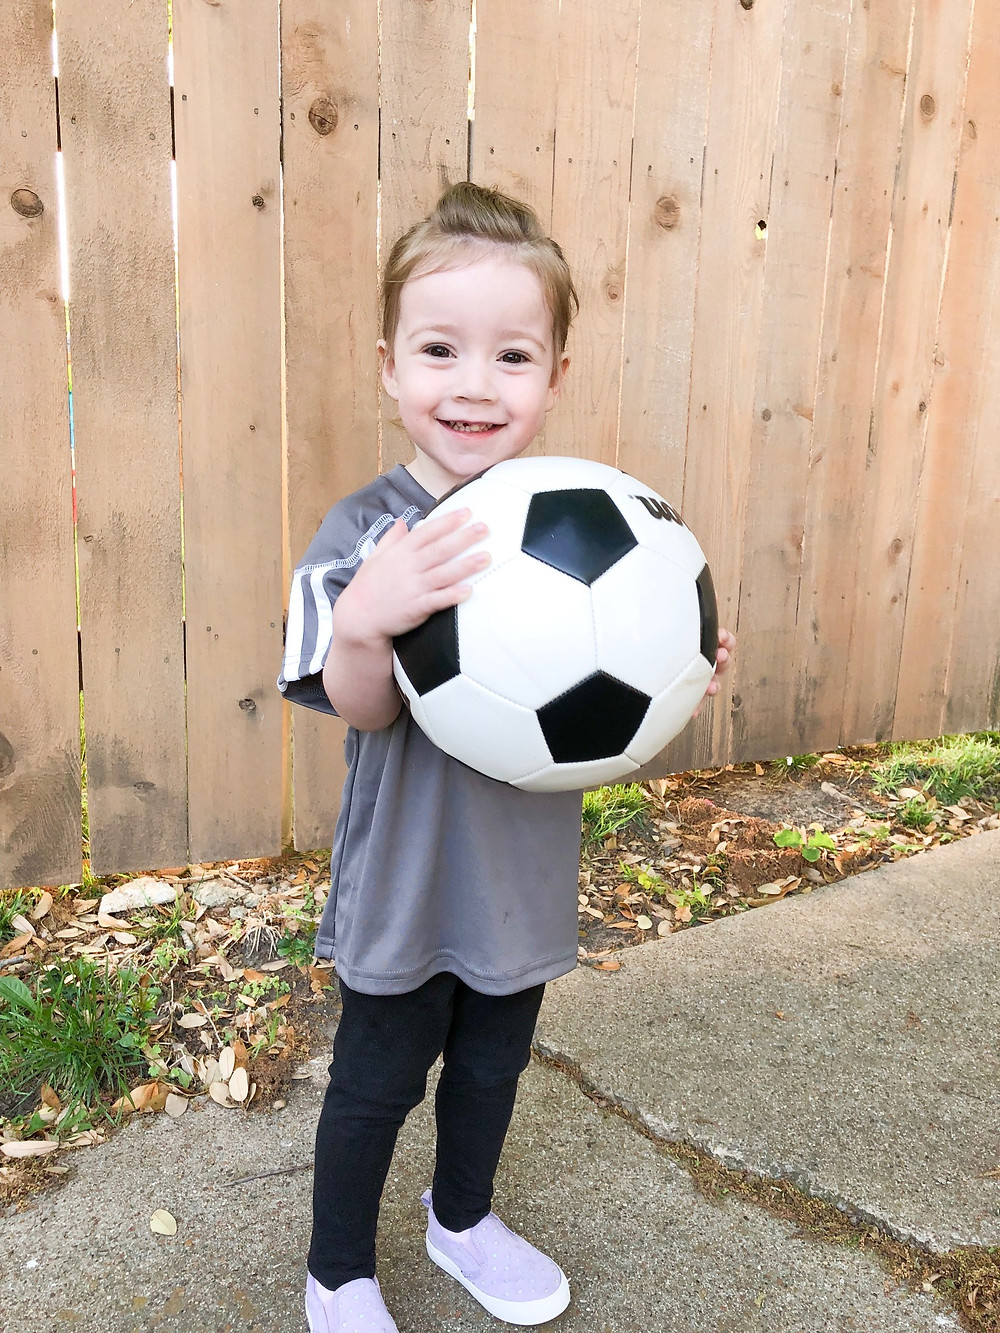 Lucy holding a soccer ball